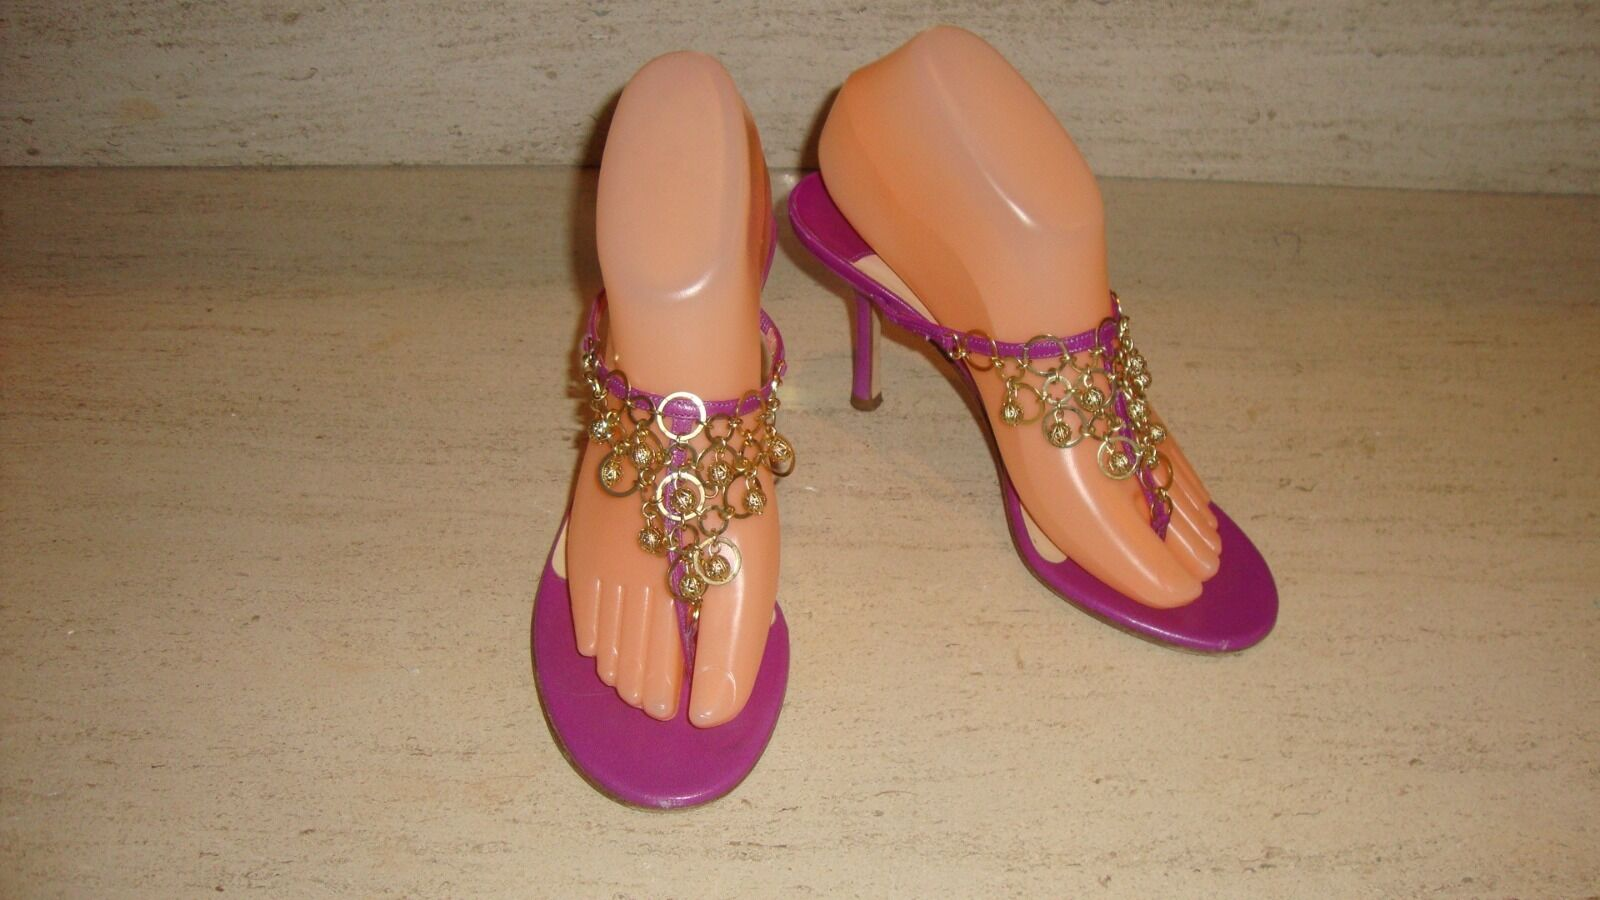 STYLISH JIMMY CHOO VIOLET SANDALS / HEELS  WITH GOLD TWICE TONE ACCENTS - WORN TWICE GOLD 9606a8